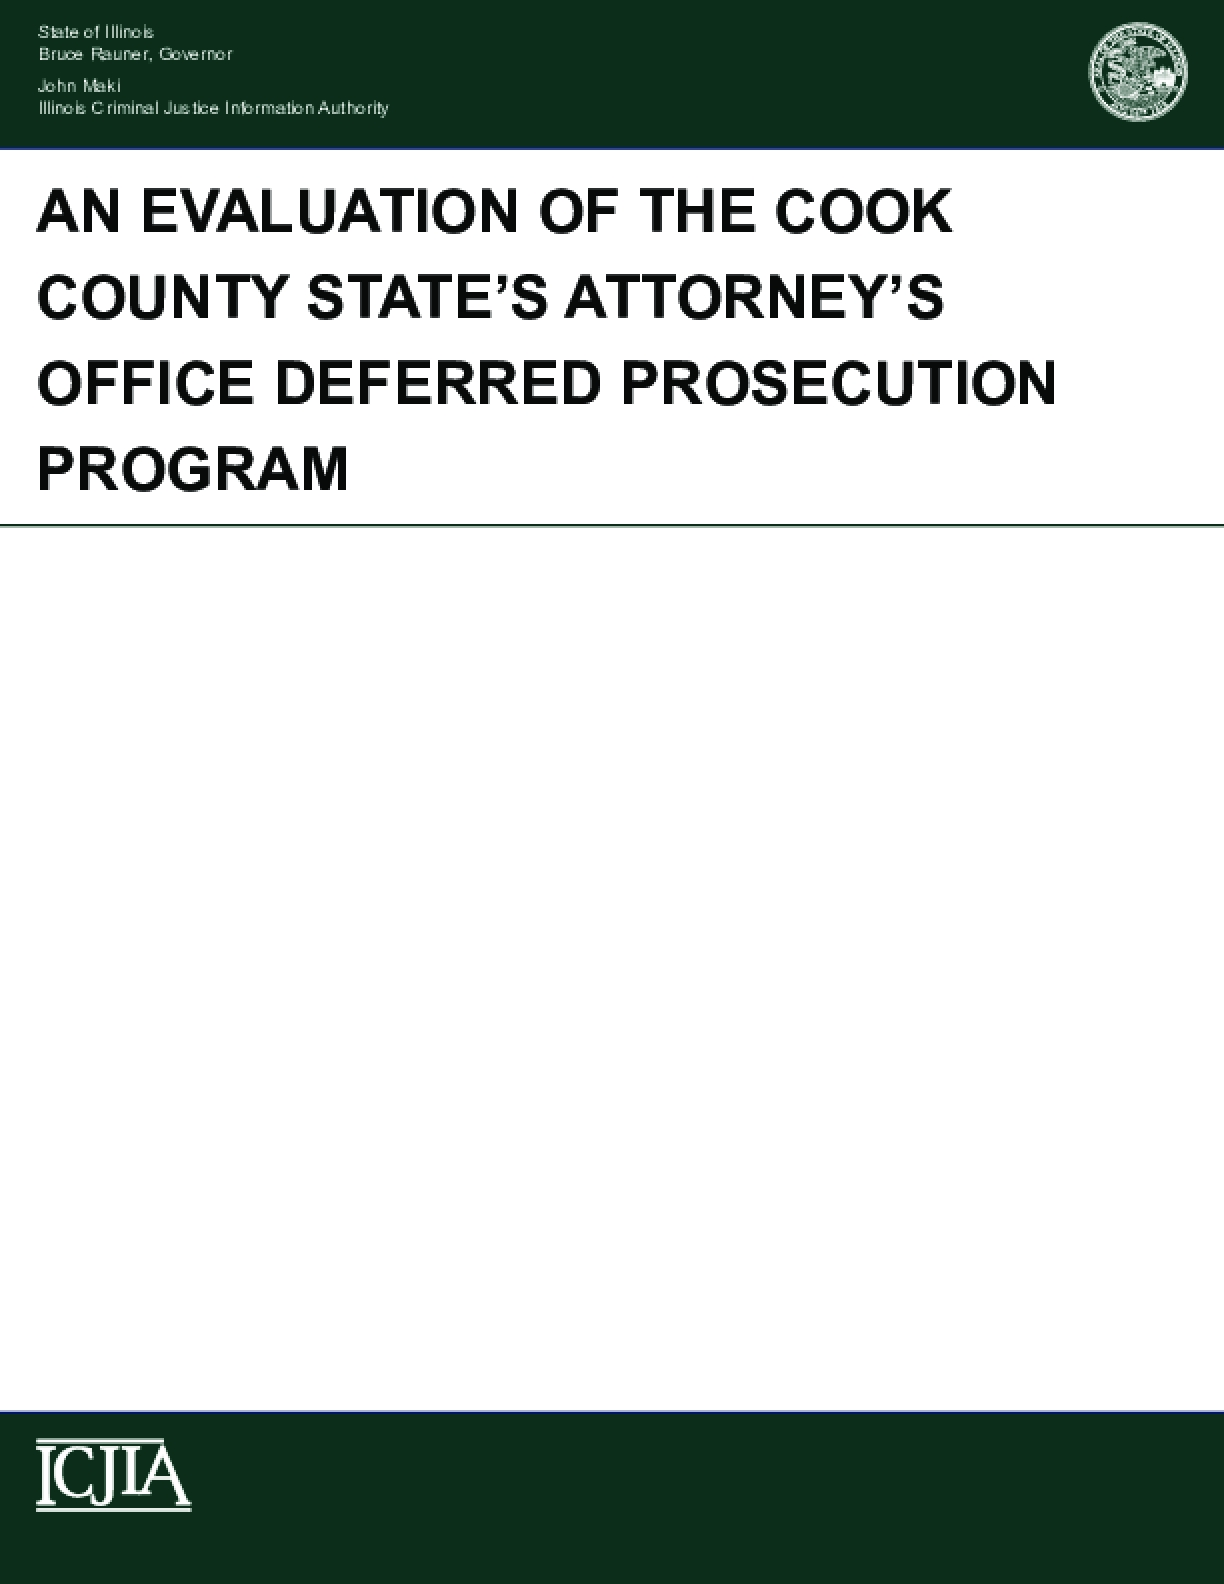 An Evaluation of the Cook County State's Attorney's Office Deferred Prosecution Program